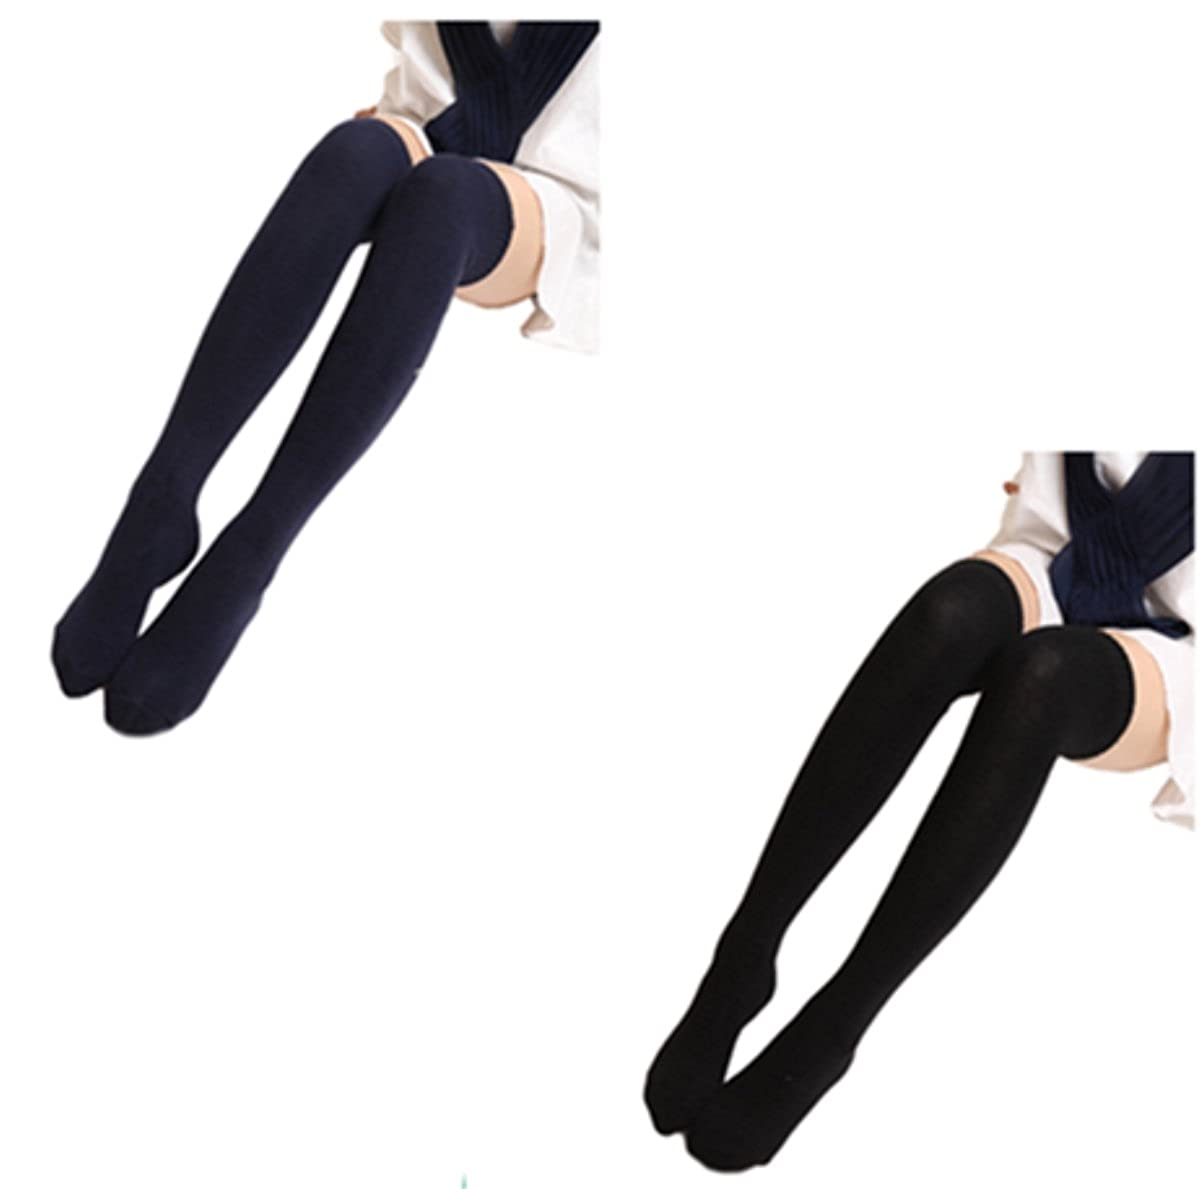 f620a750df2e2 Women's Long Schoolgirl Stockings Cute Ladies Over Knee Socks Thigh High  Schoolgirl Socks Cable Knit Socks 2 Pairs at Amazon Women's Clothing store: